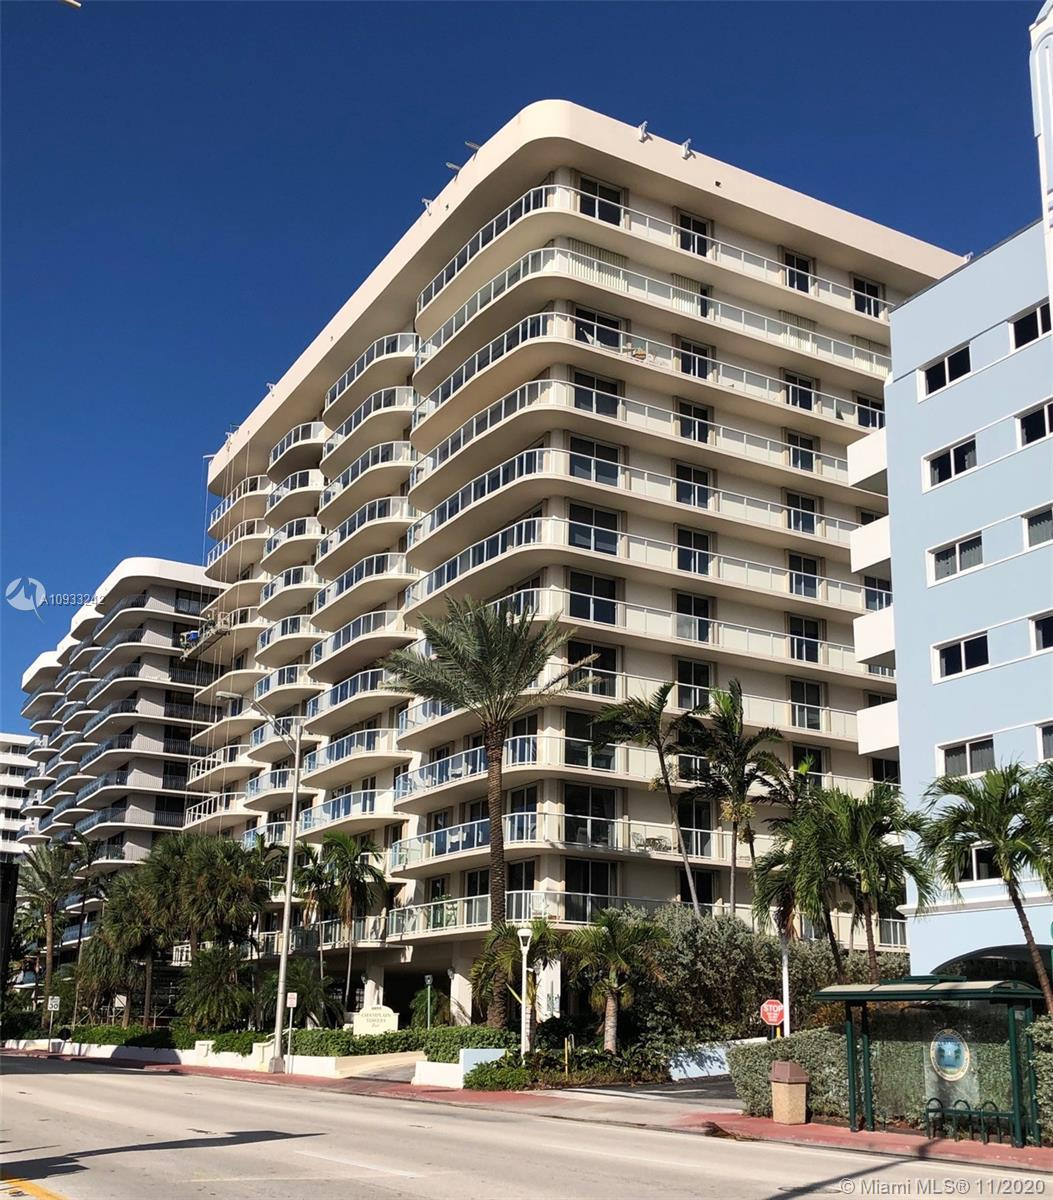 Spacious 2 beds/ 2baths apartment in a well maintained and secure building. Access to a huge balcony